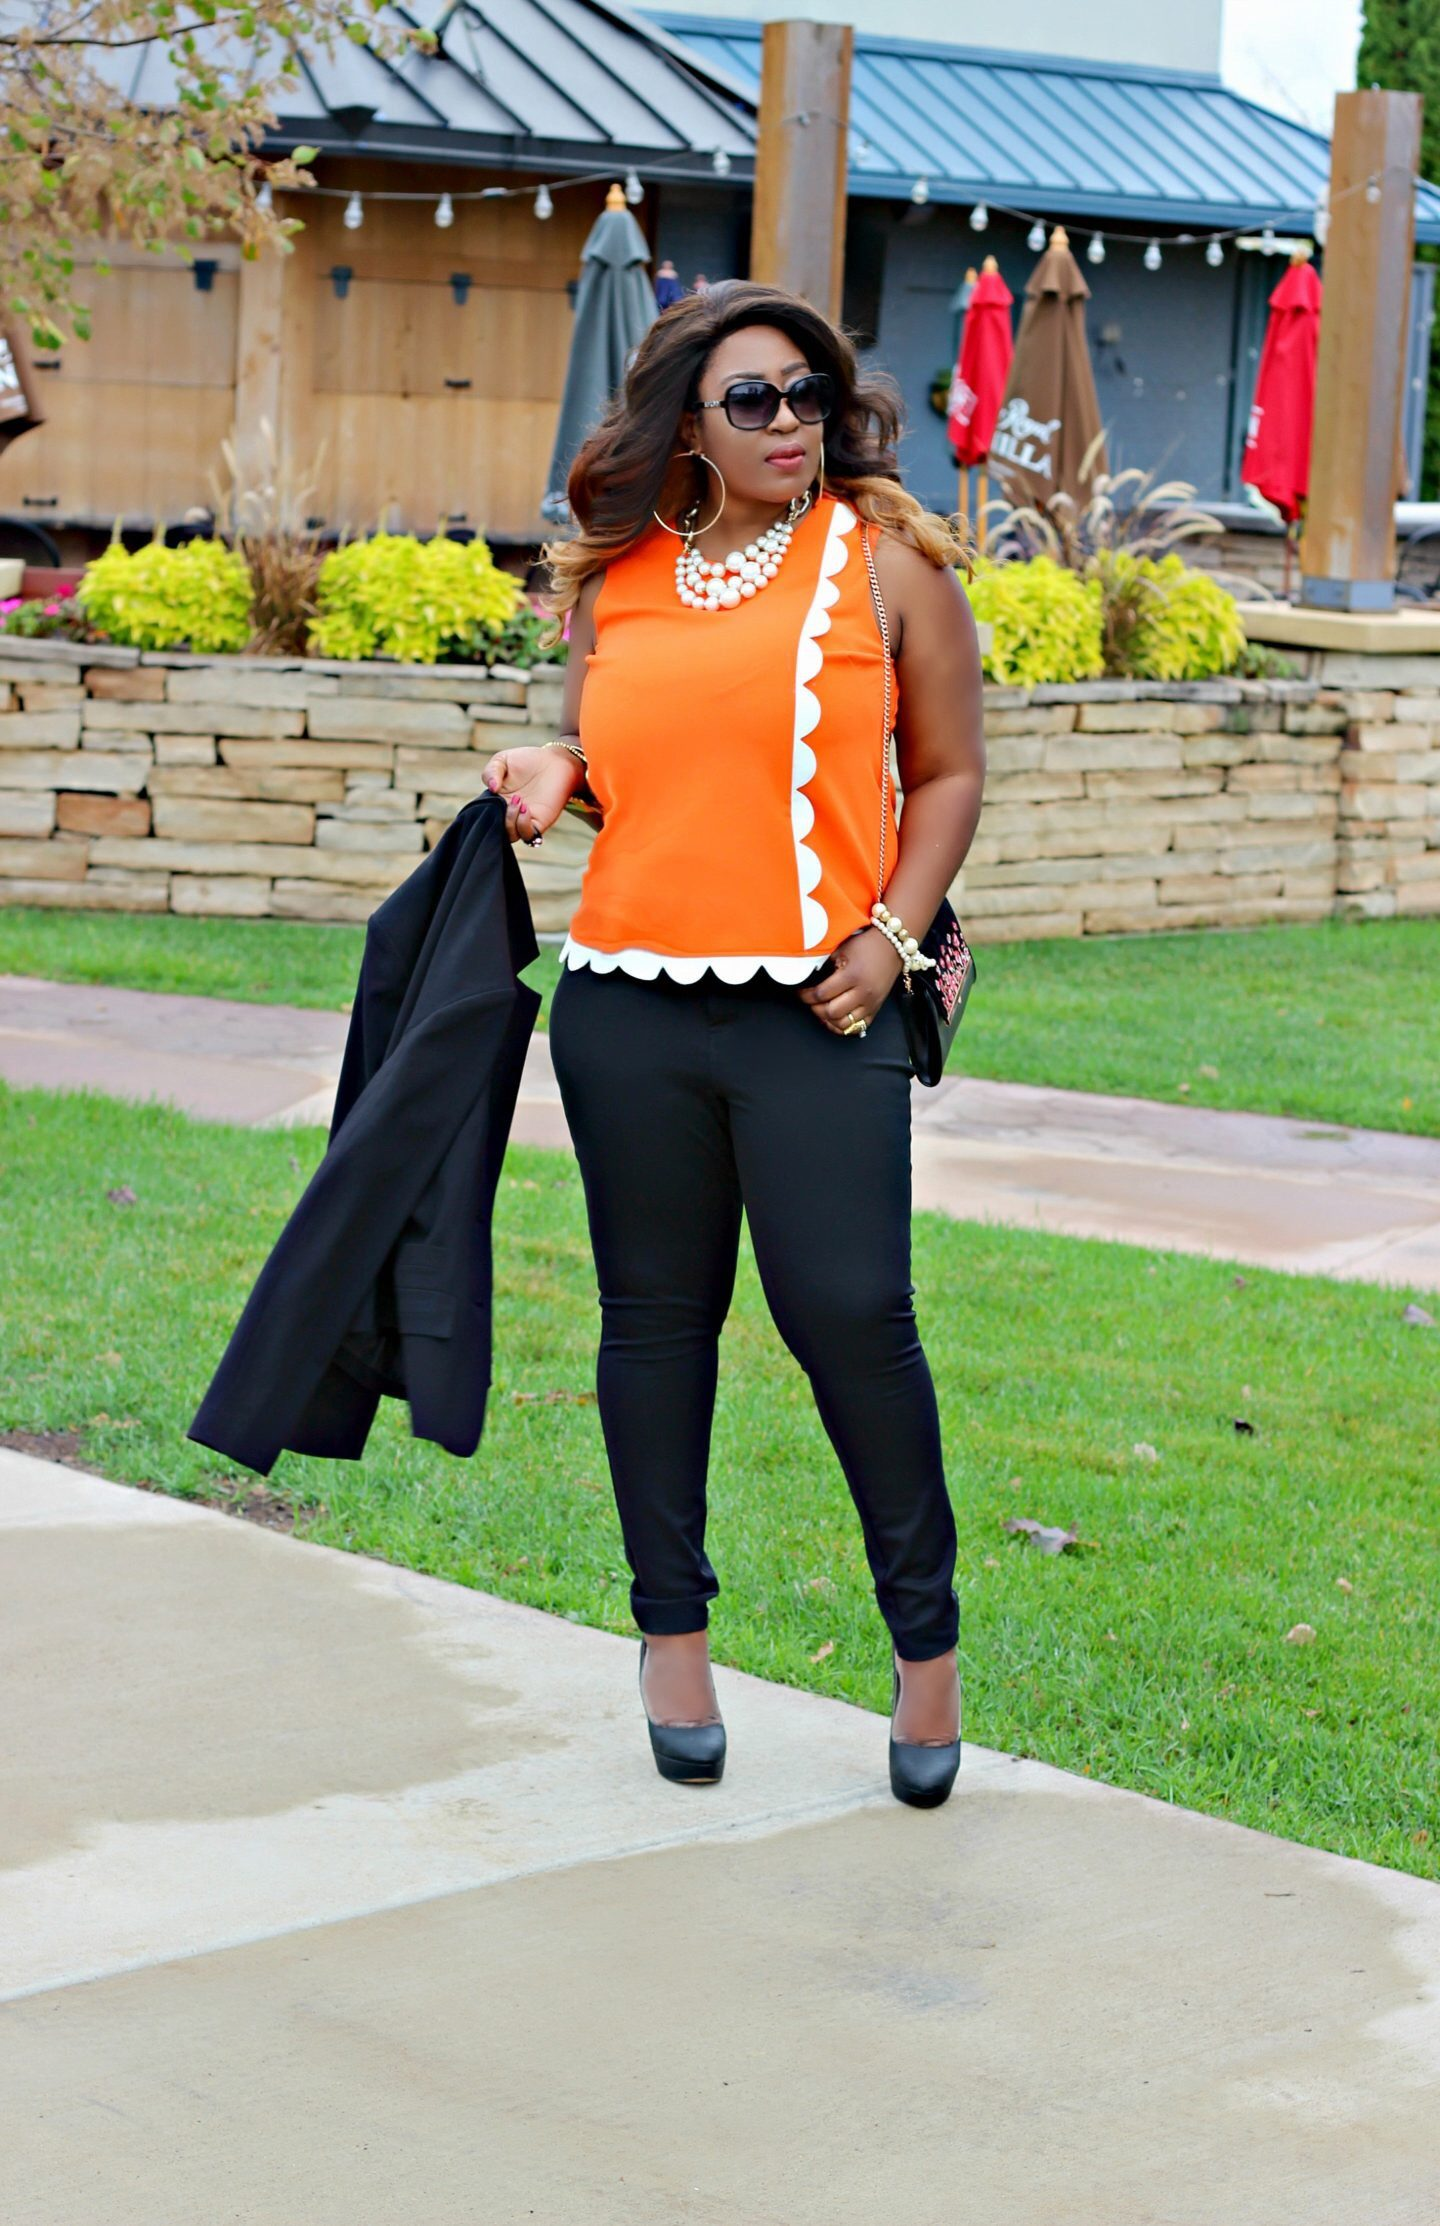 Making Boss Moves | Chic Orange Top Outfit